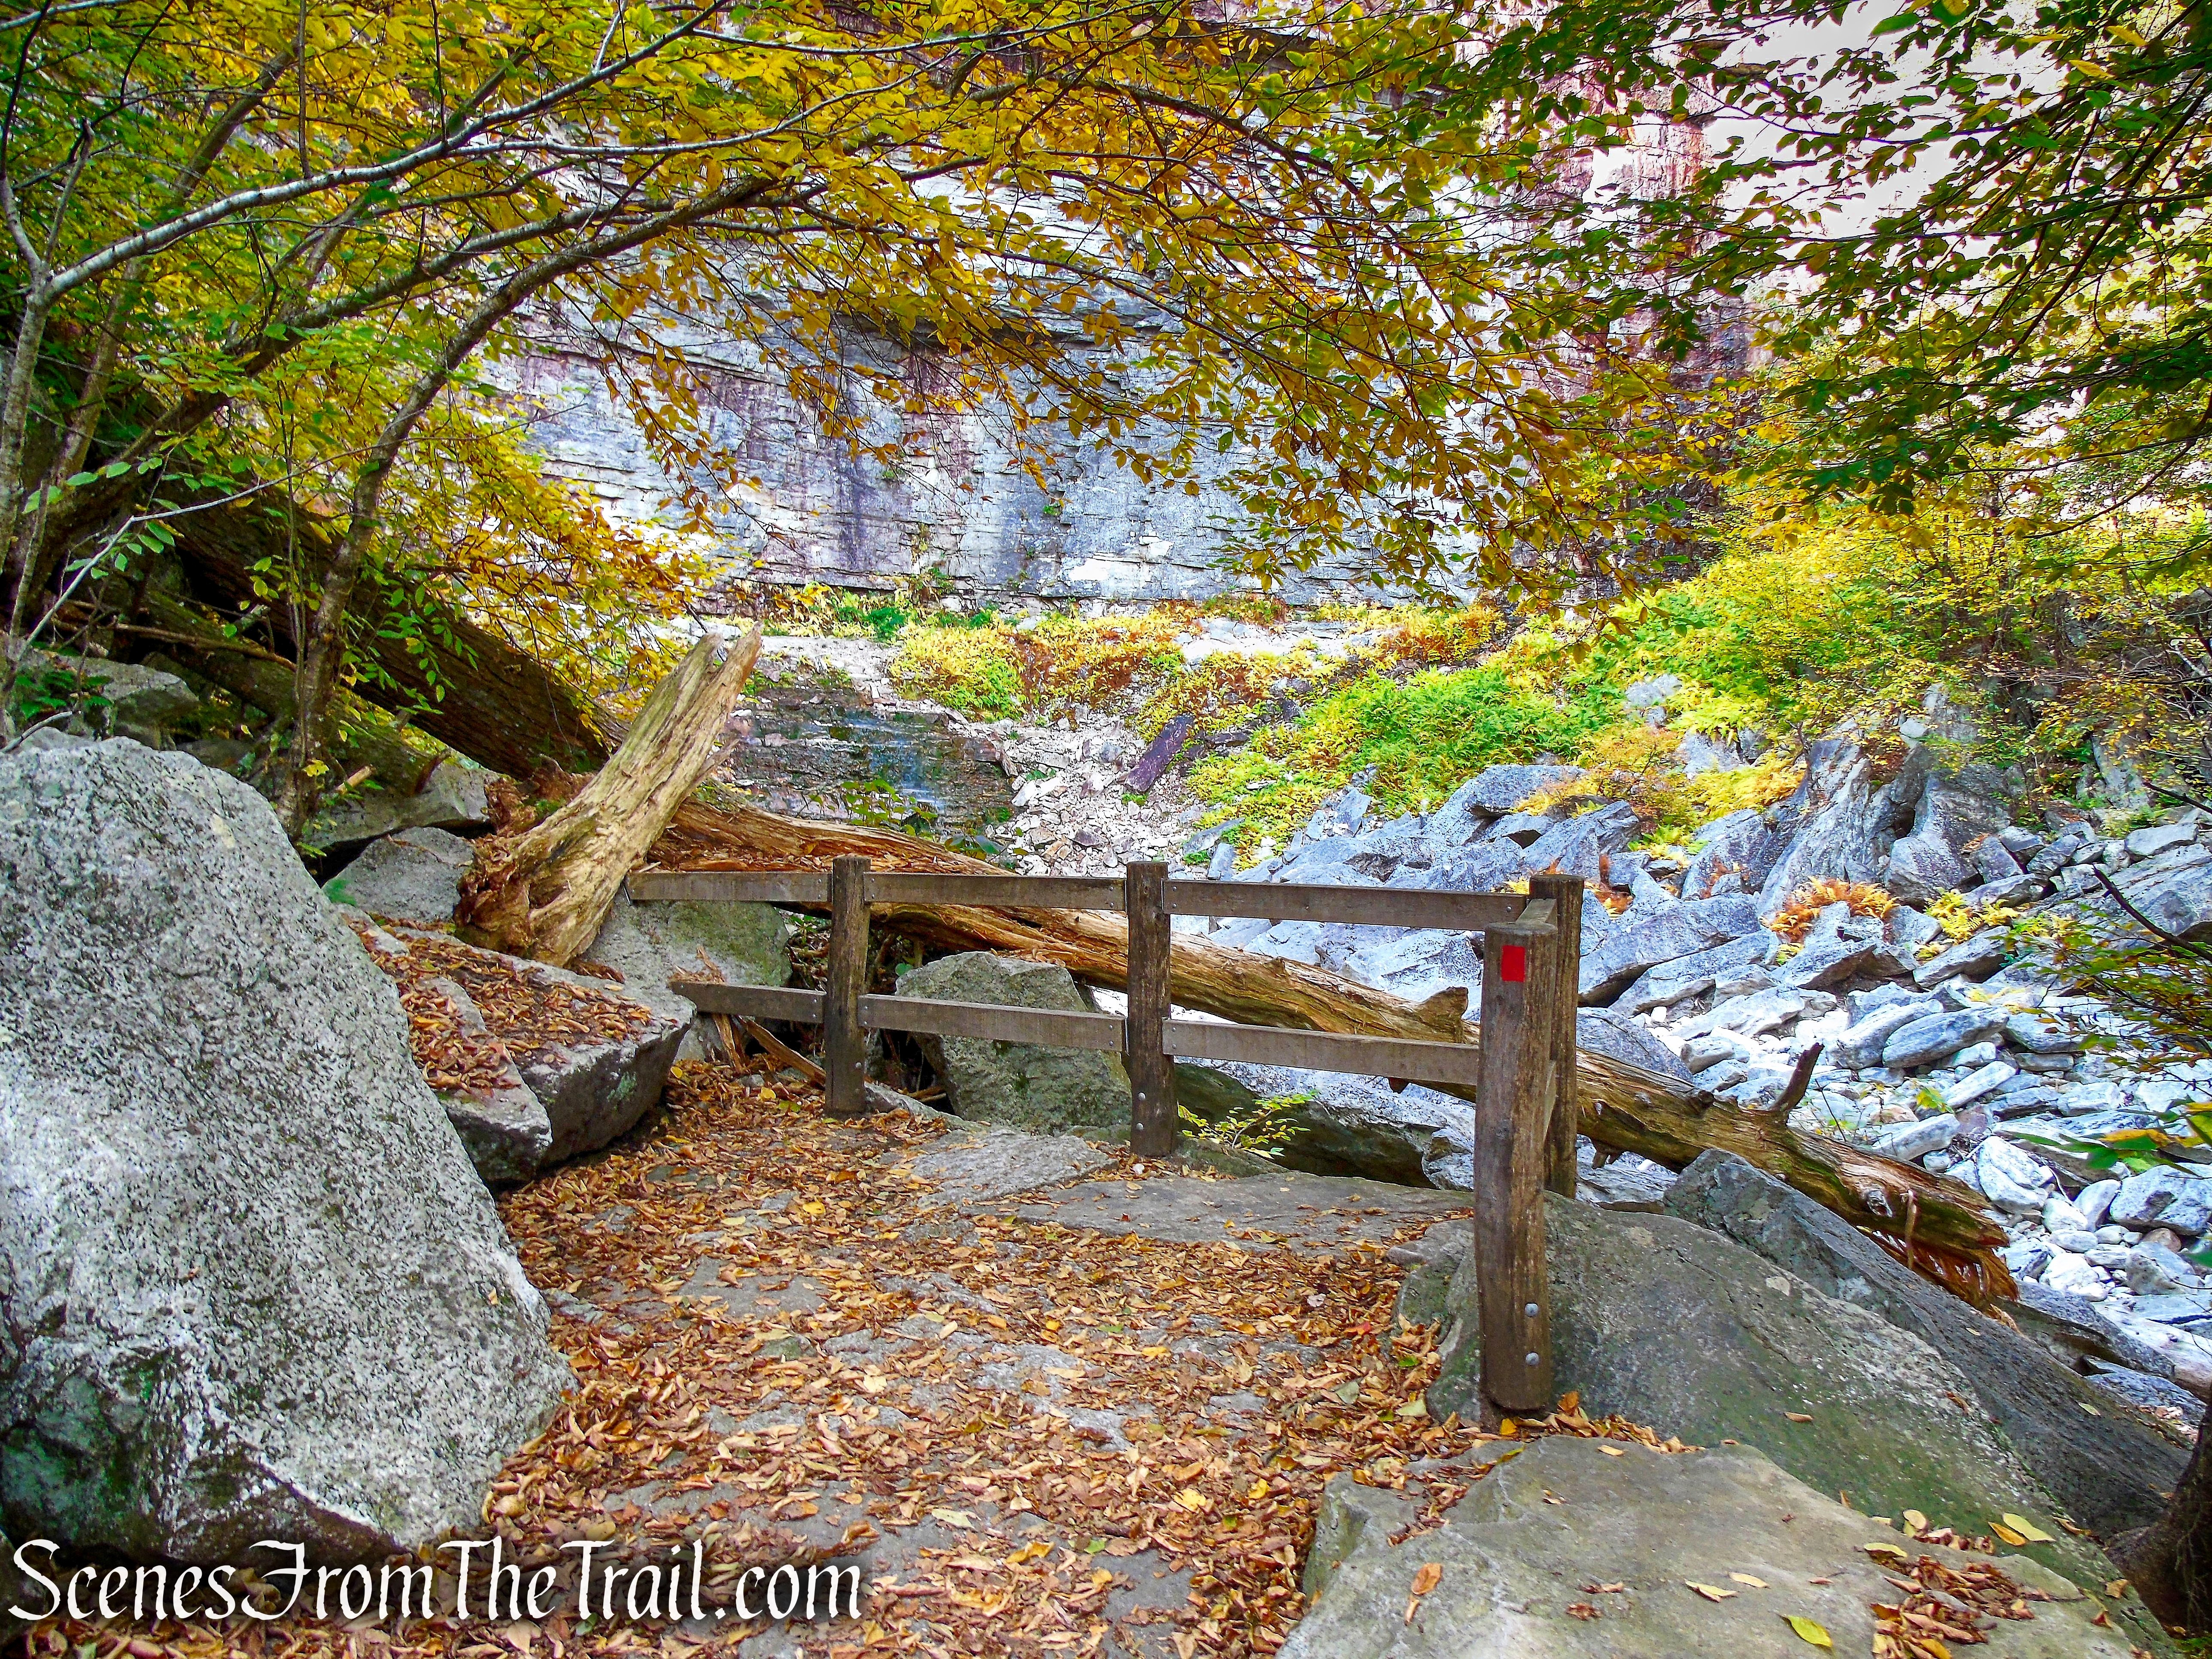 Stony Kill Falls viewing platform - Stony Kill Footpath - Minnewaska State Park Preserve